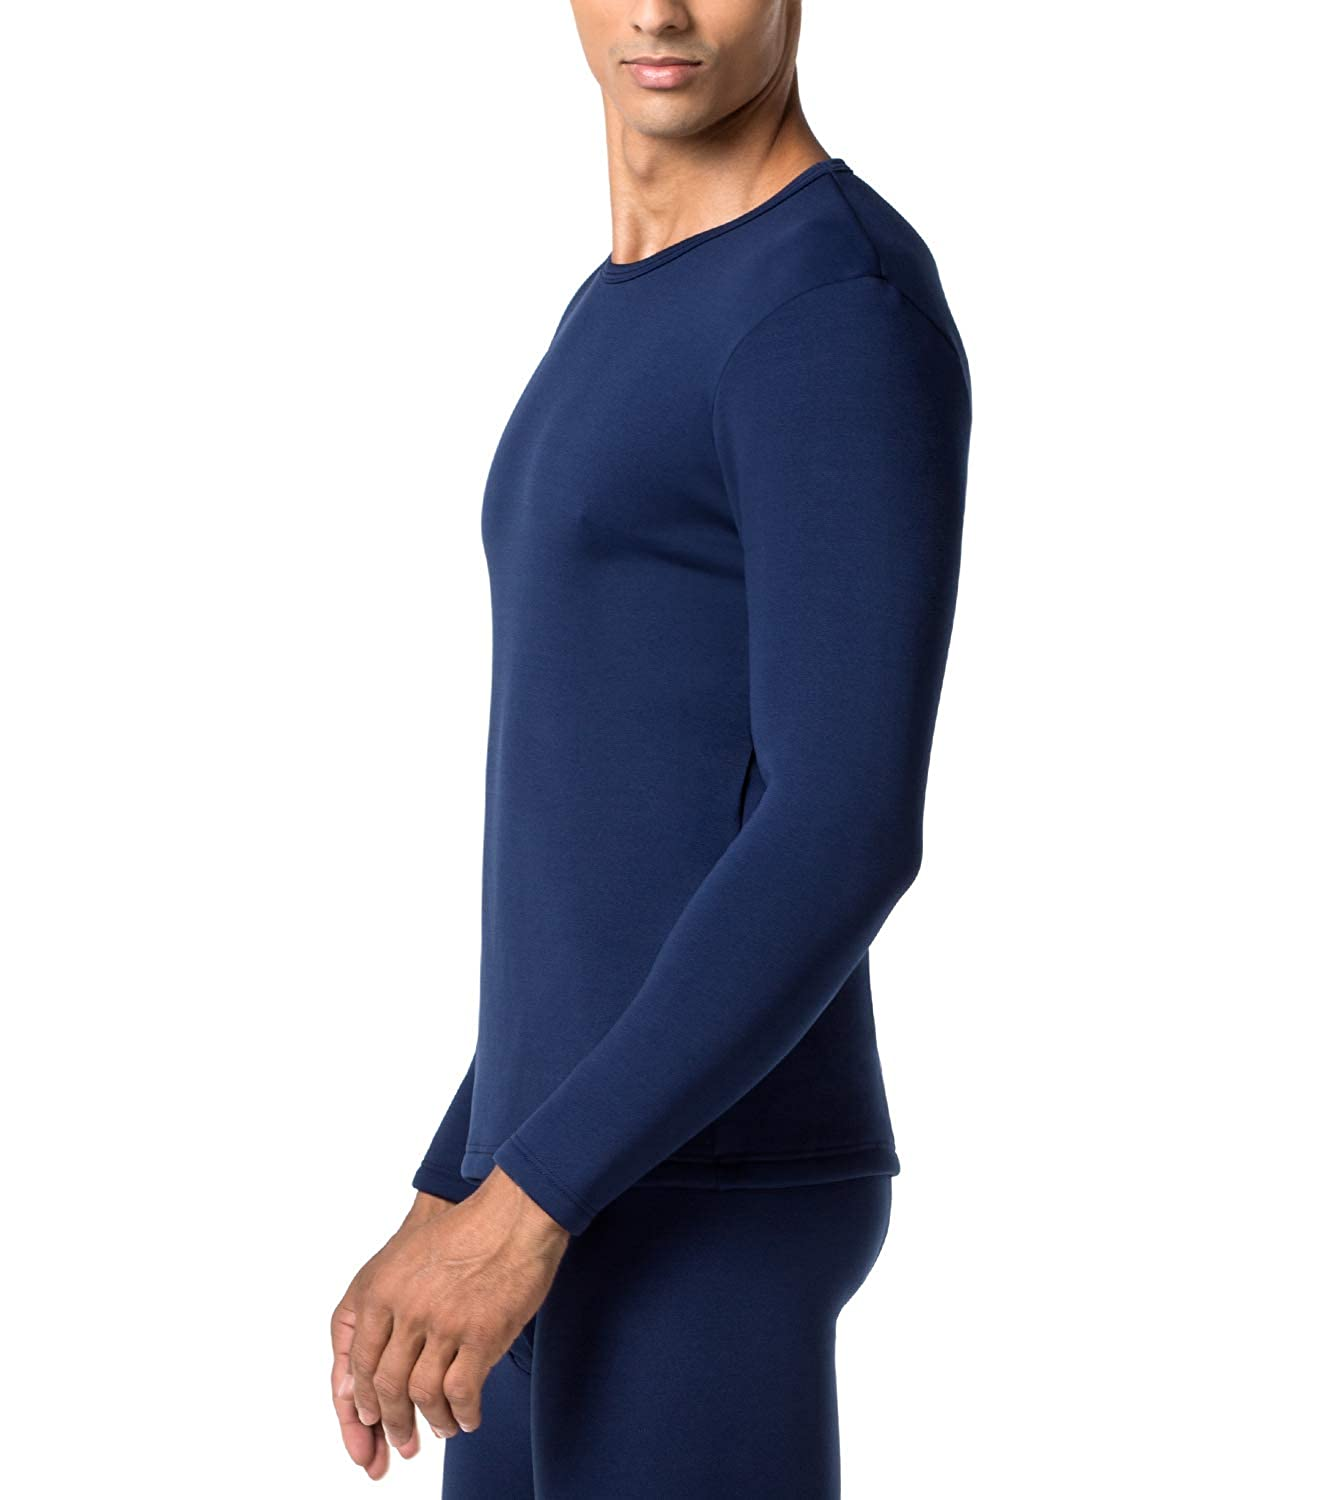 LAPASA Men's Heavyweight Thermal Underwear Top Fleece Lined Base Layer Long Sleeve Shirt M26